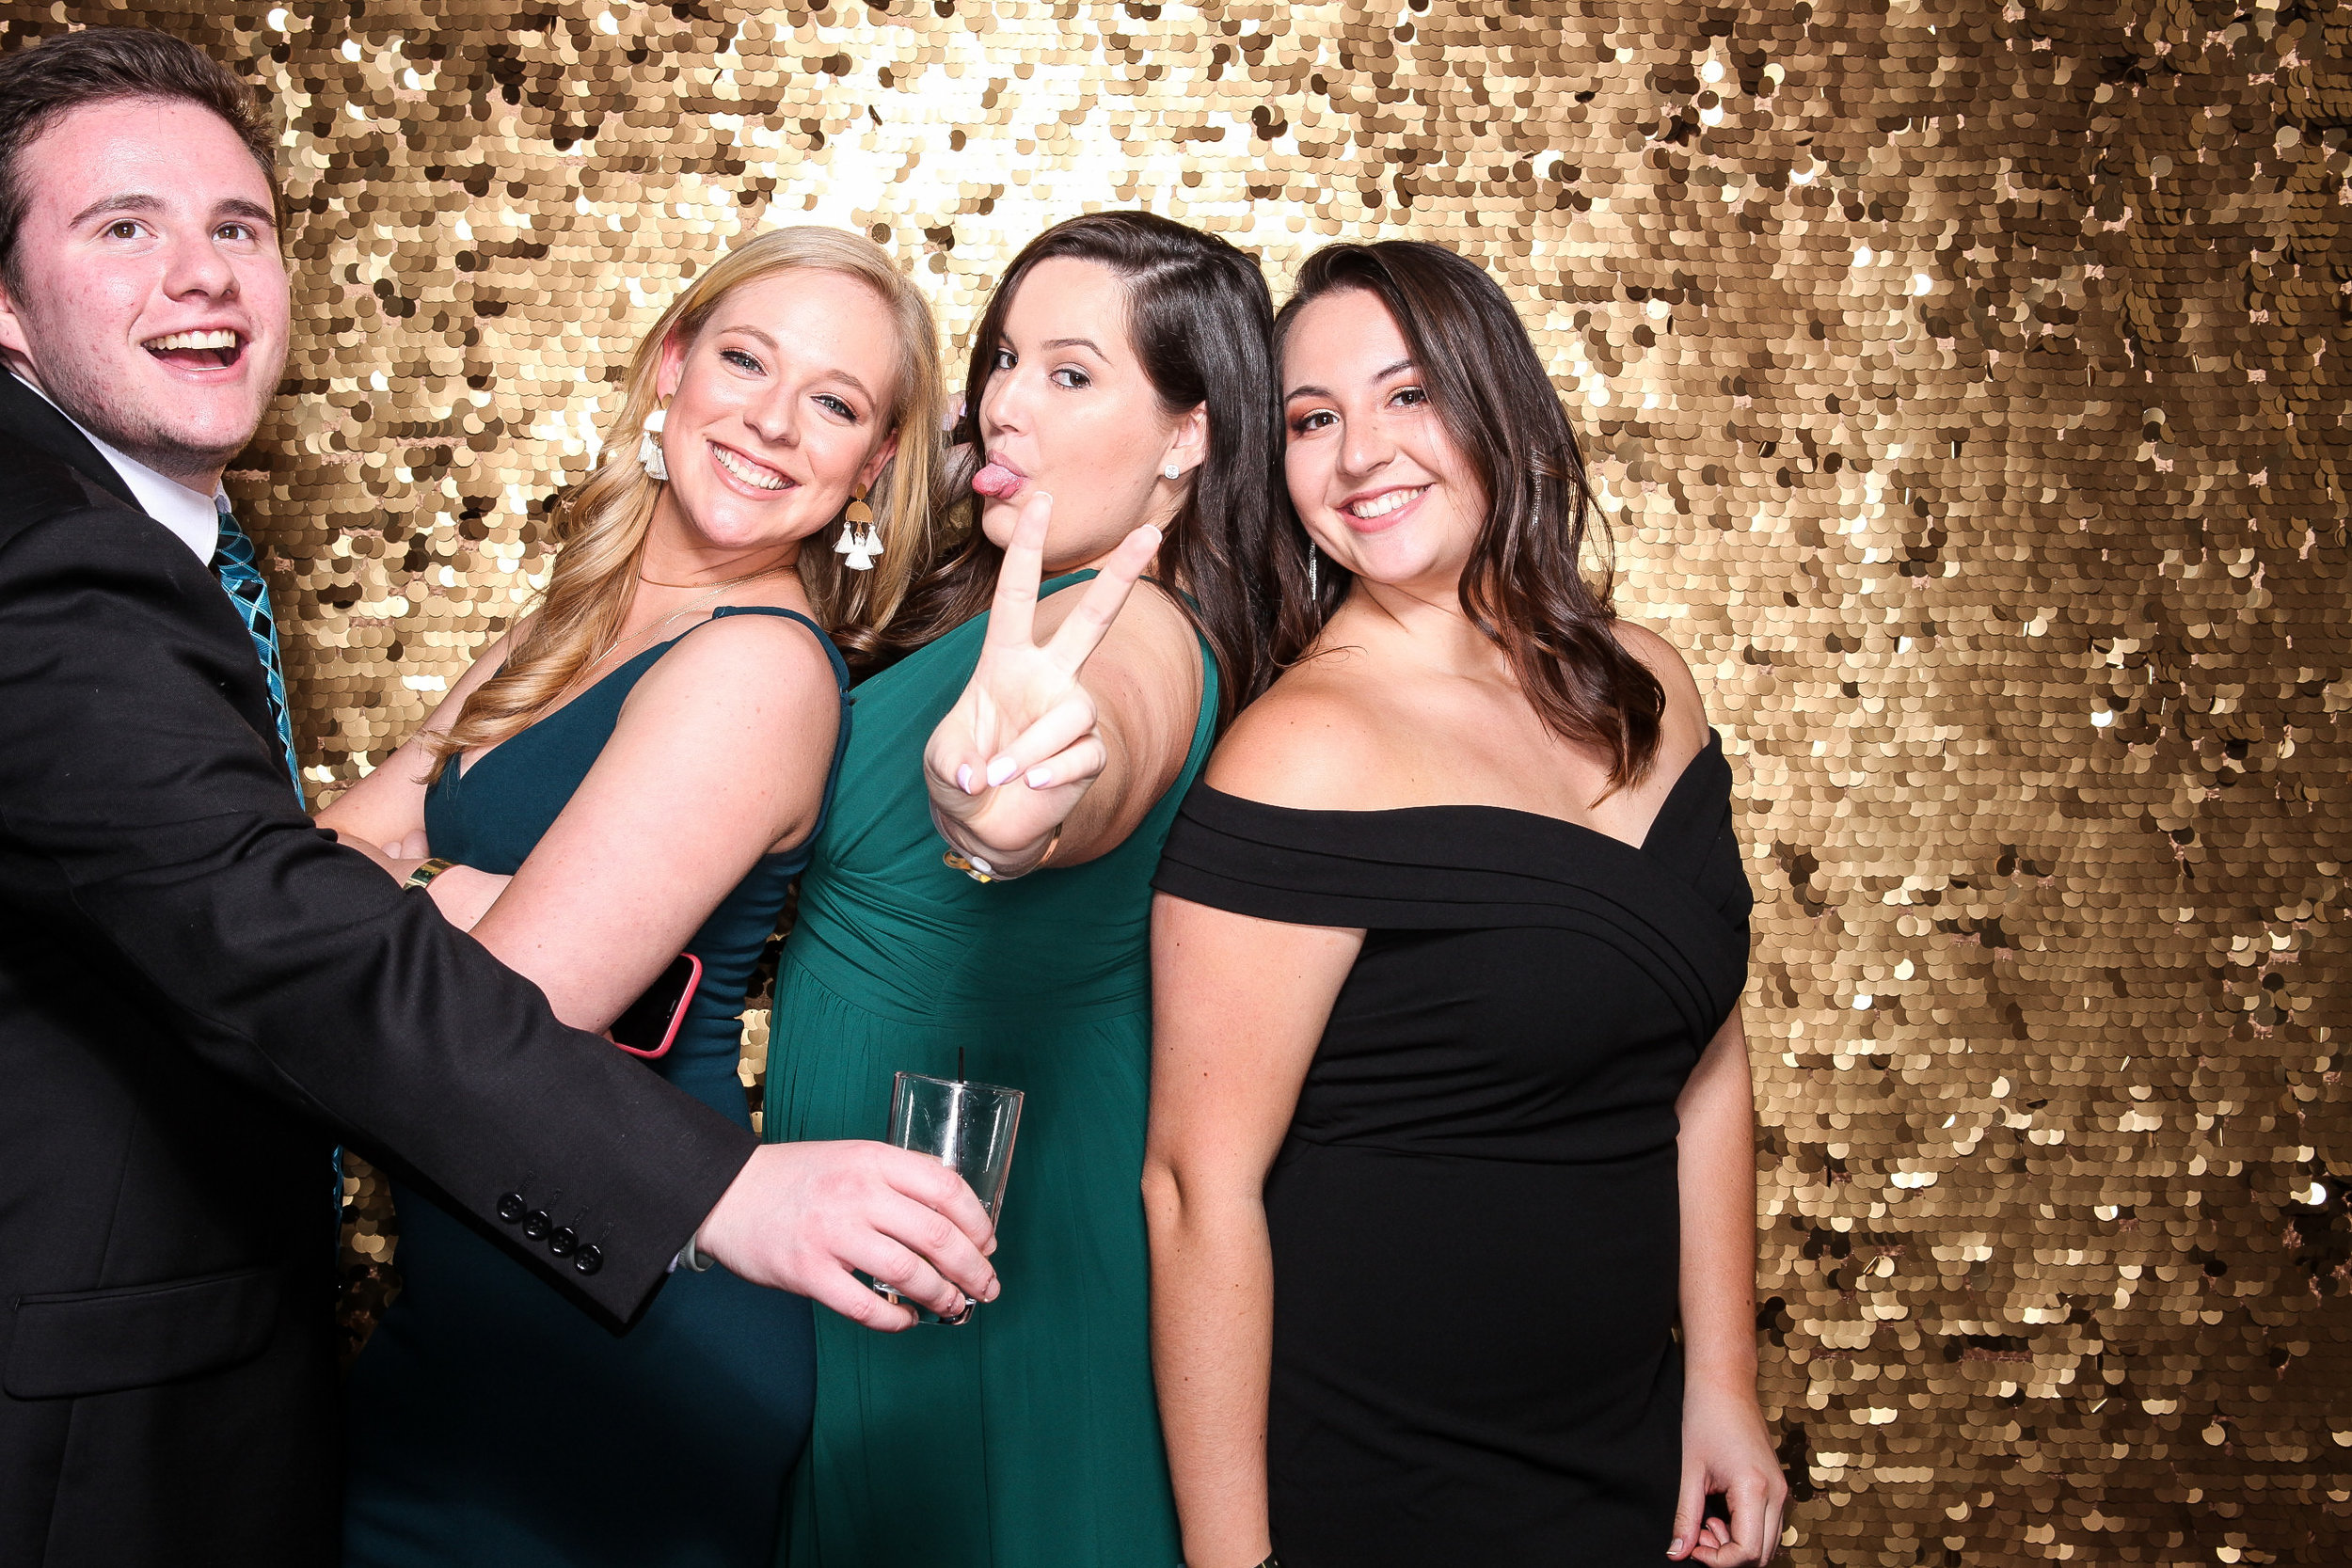 20190503_Adelphi_Senior_Formal-057.jpg